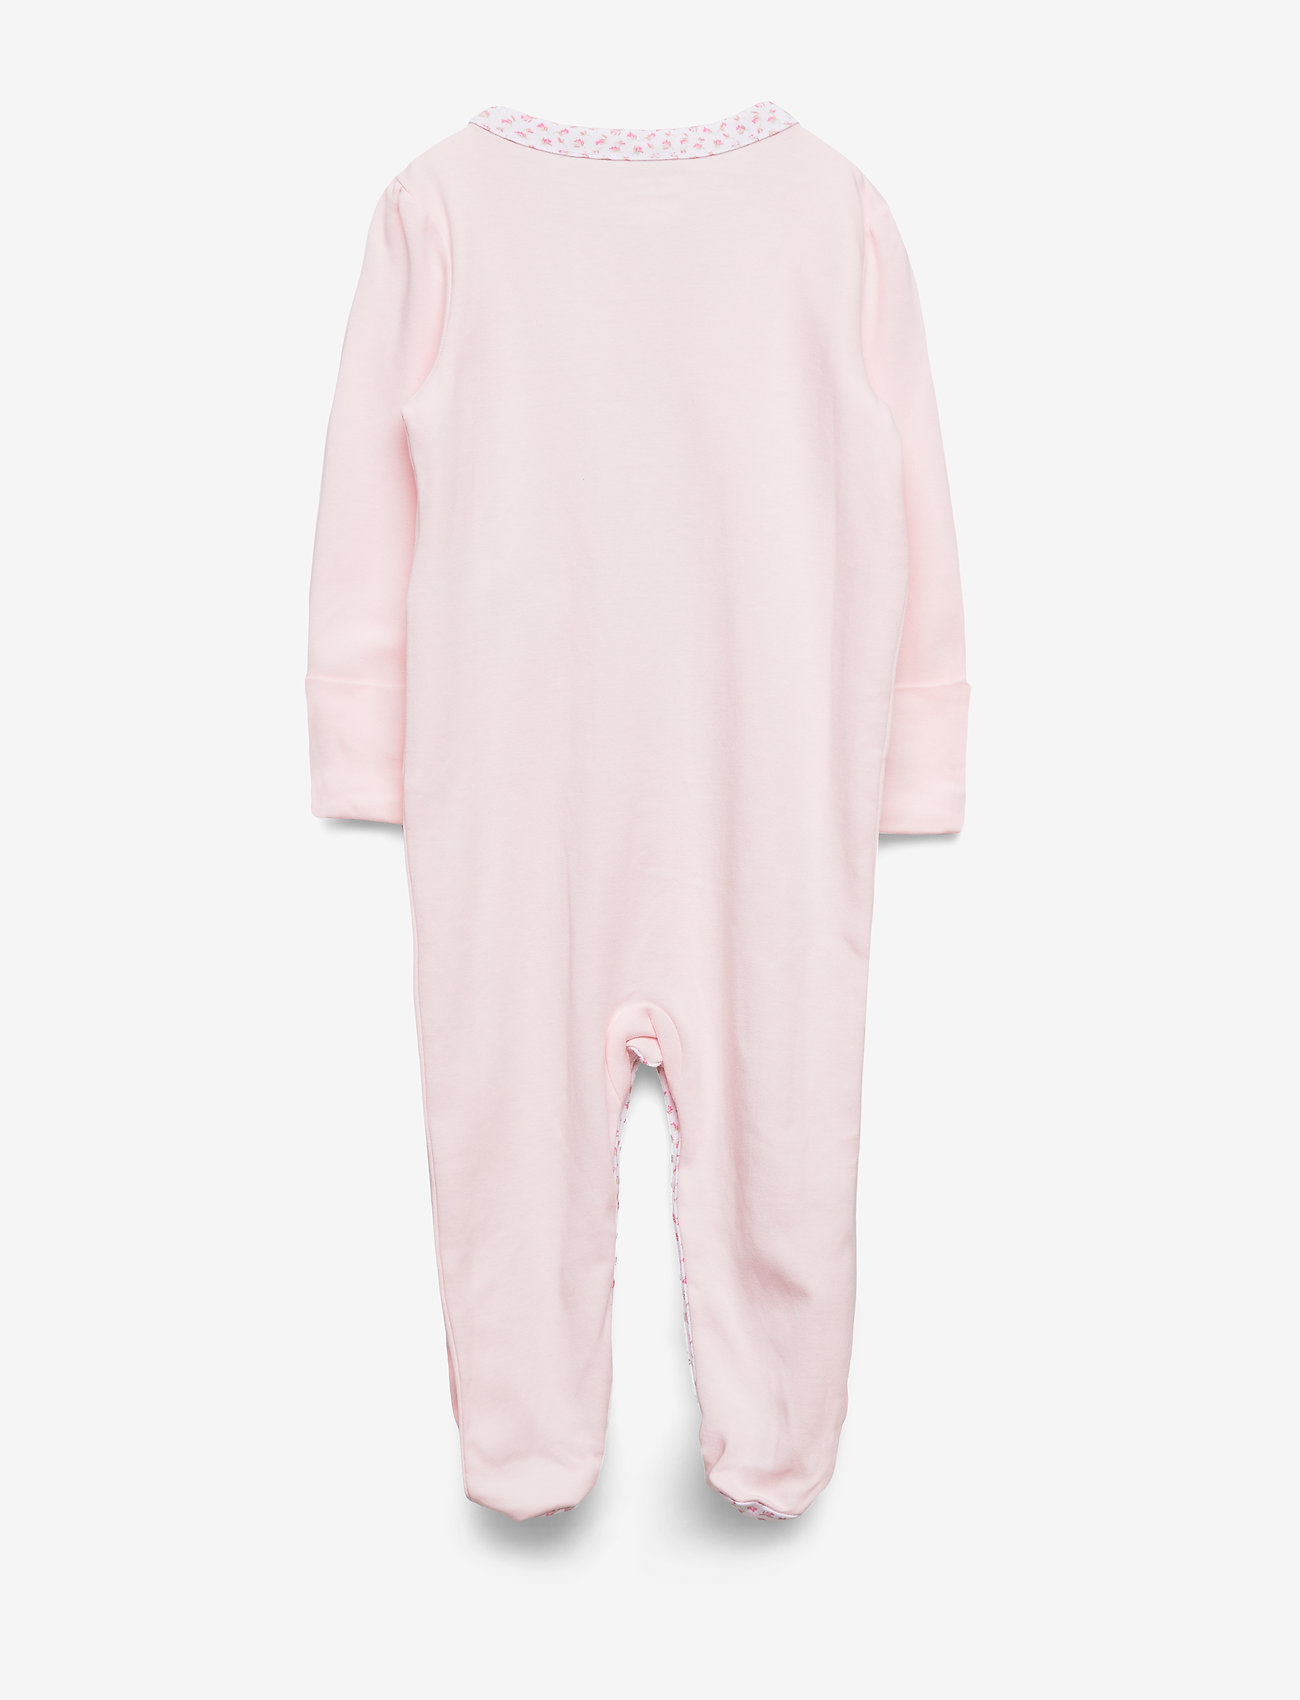 Ralph Lauren Baby - Floral-Trim Cotton Coverall - pajacyki do spania - delicate pink - 1